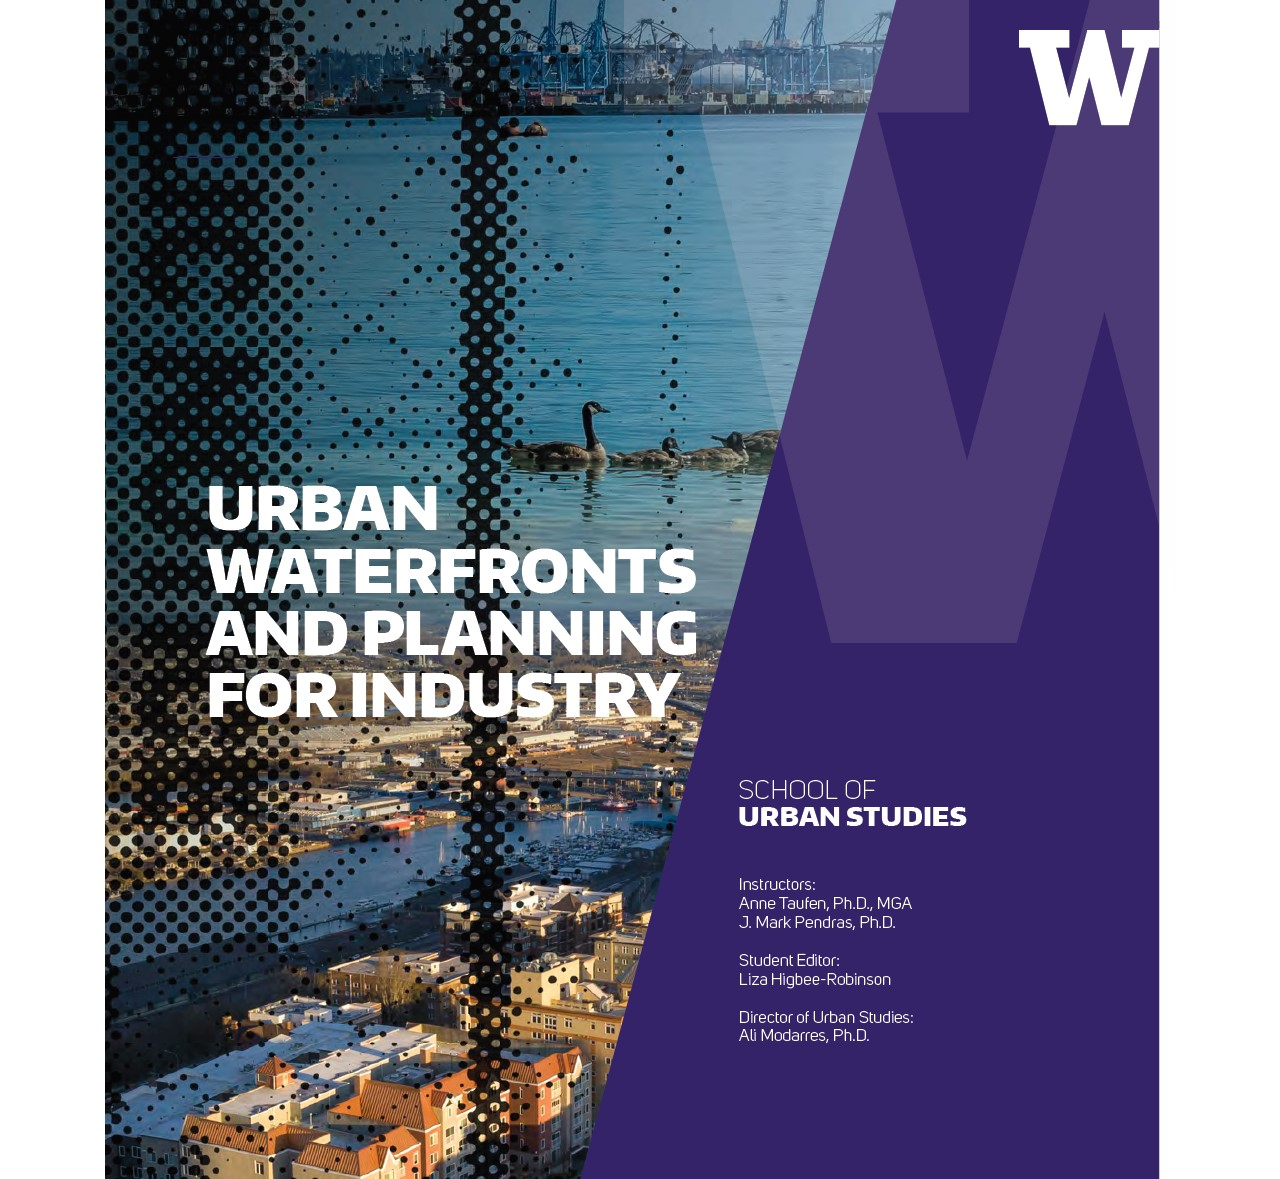 Urban Waterfronts and Planning for Industry